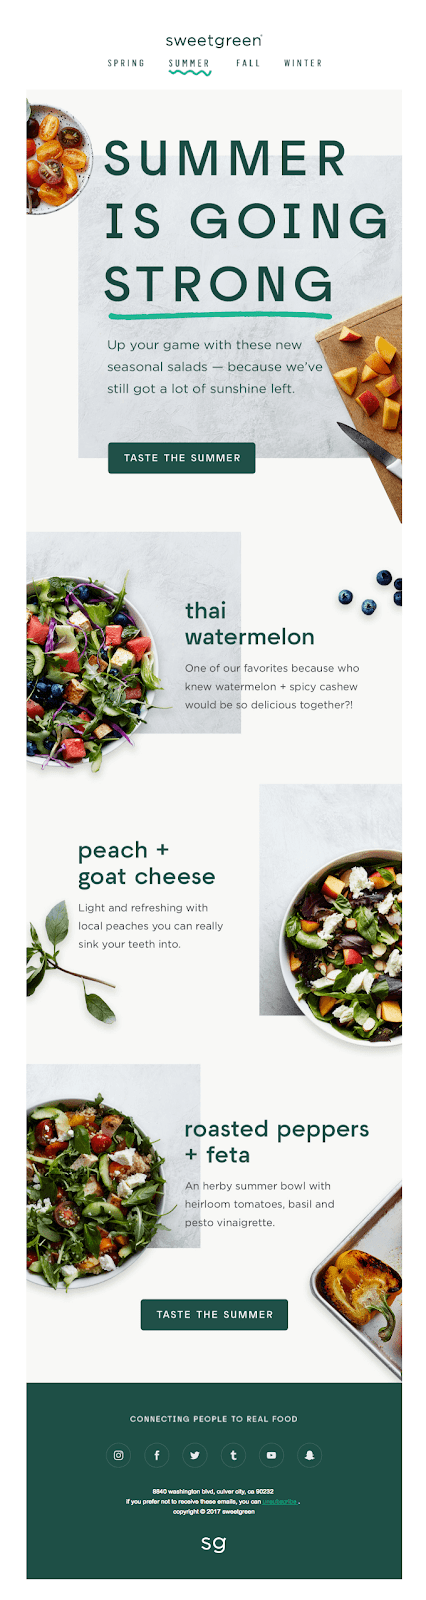 sweetgreen email marketing campaign examples